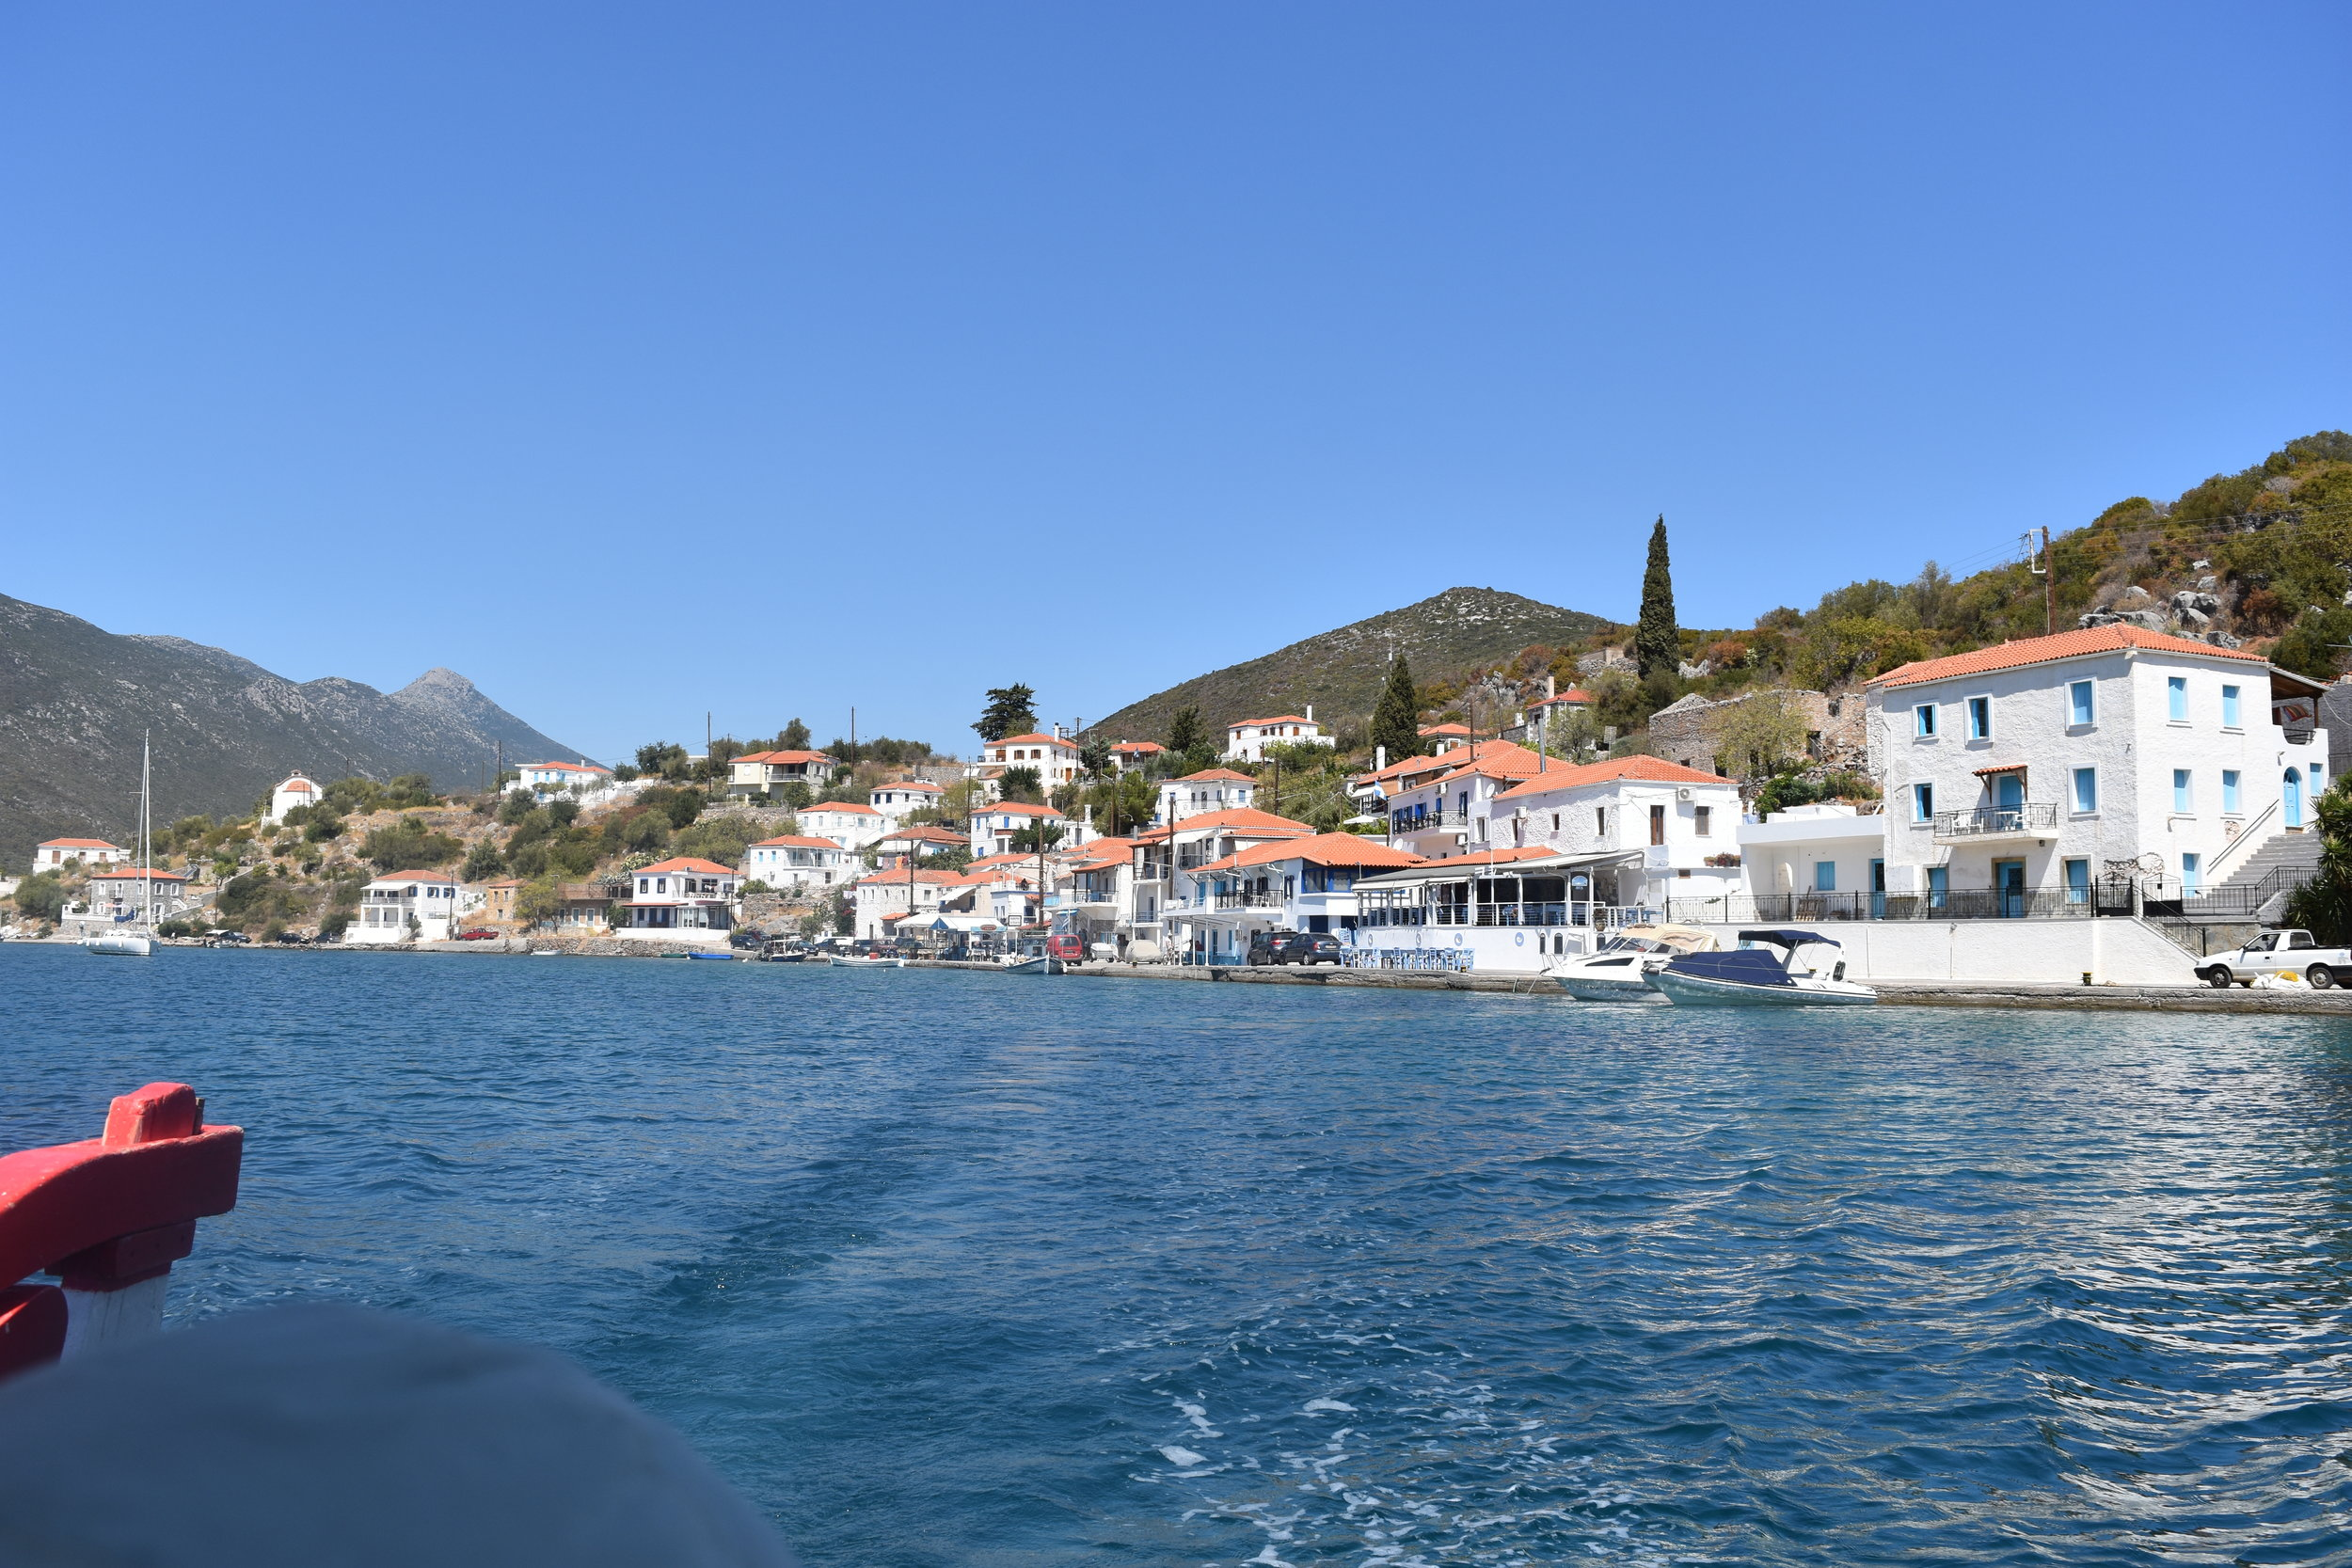 Limani Gerakas, as we are leaving the village by boat